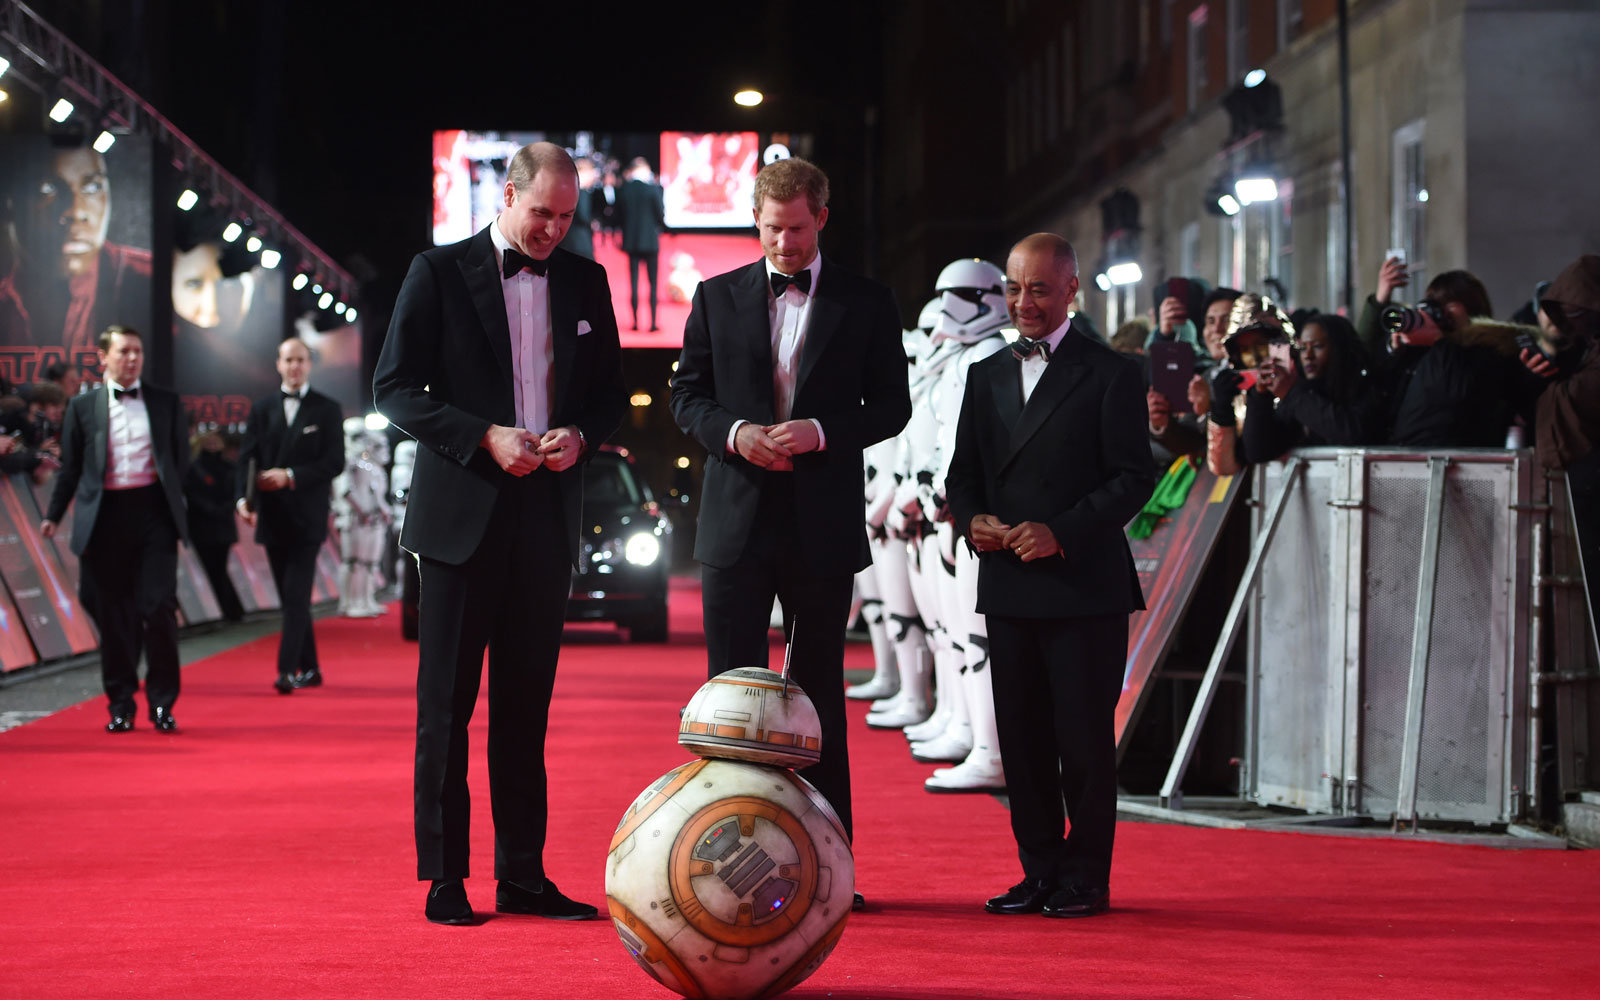 prince William and prince harry at star wars premiere